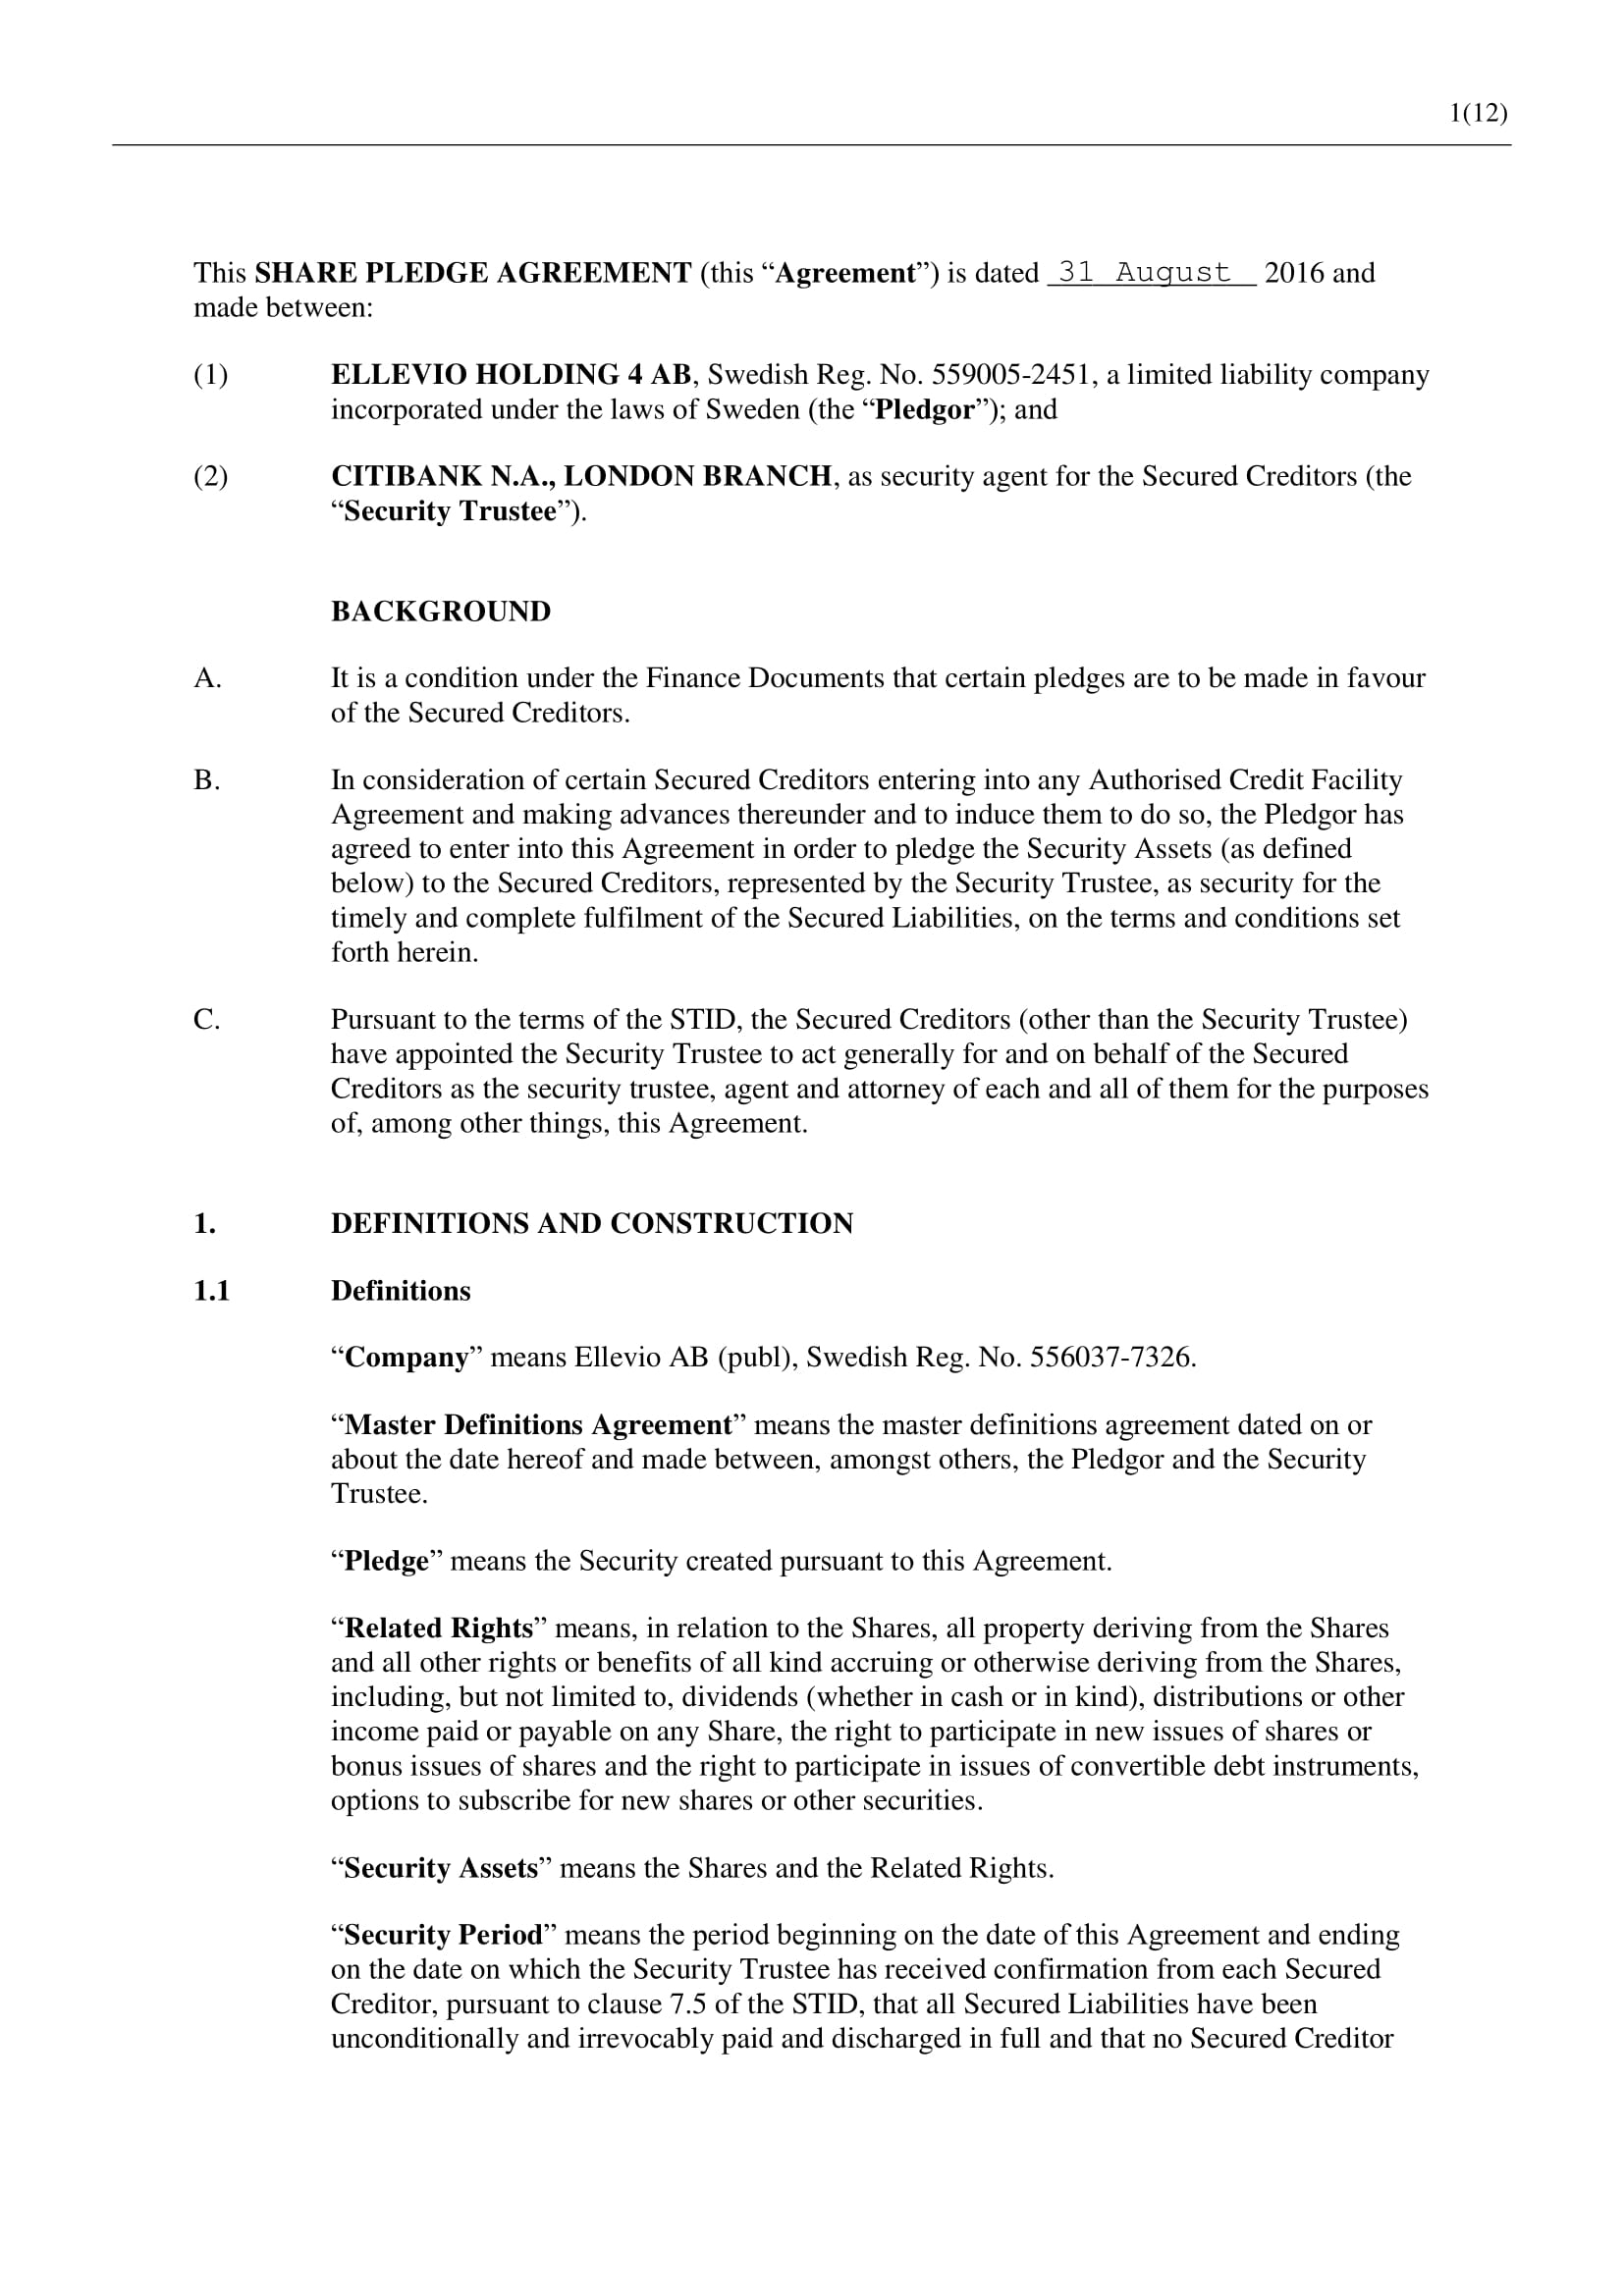 share pledge agreement contract form 03